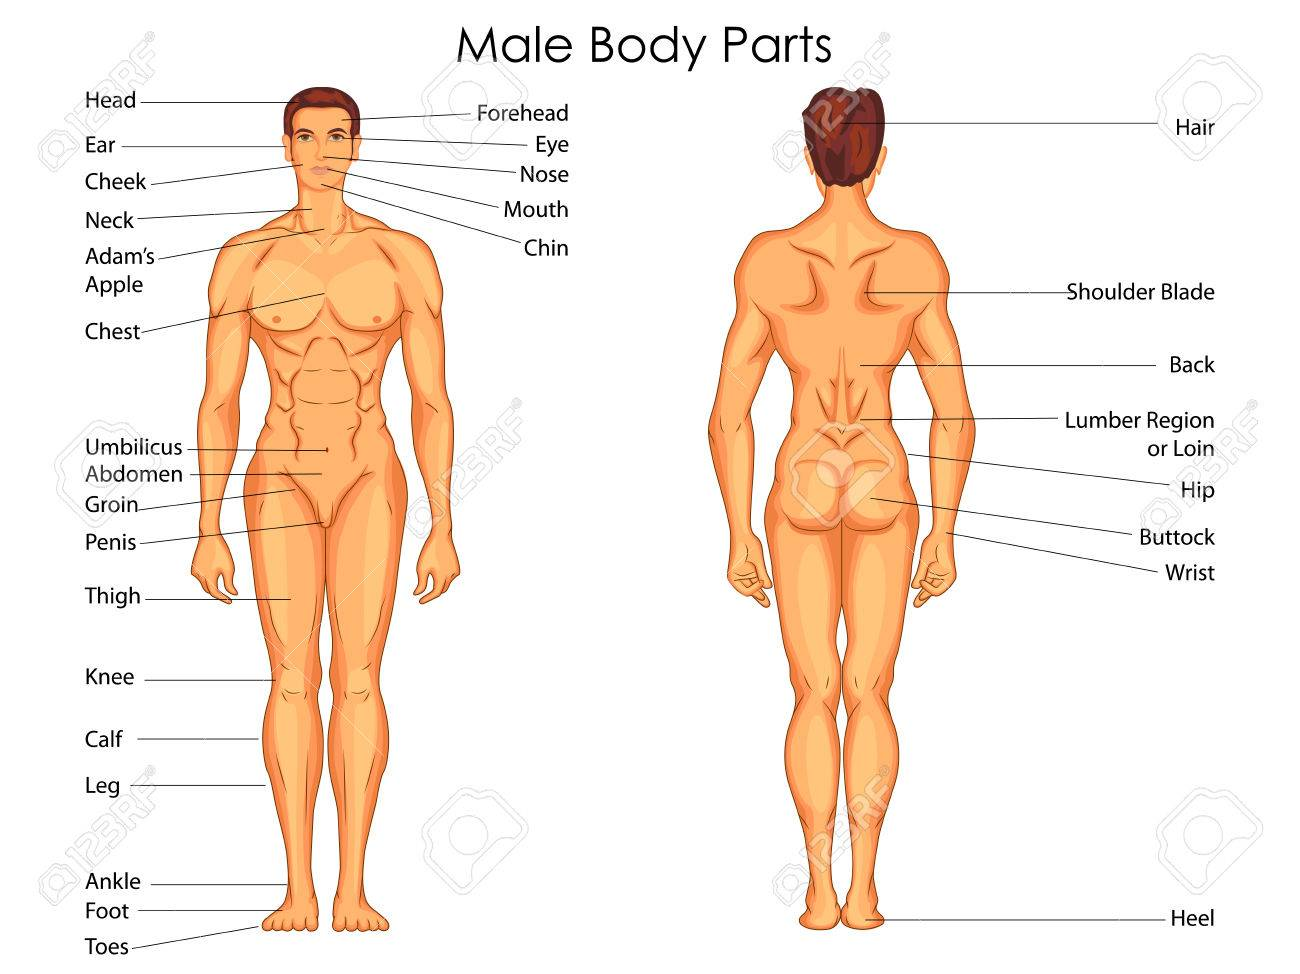 Medical Education Chart Of Biology For Male Body Parts Diagram Royalty Free Cliparts Vectors And Stock Illustration Image 79651341